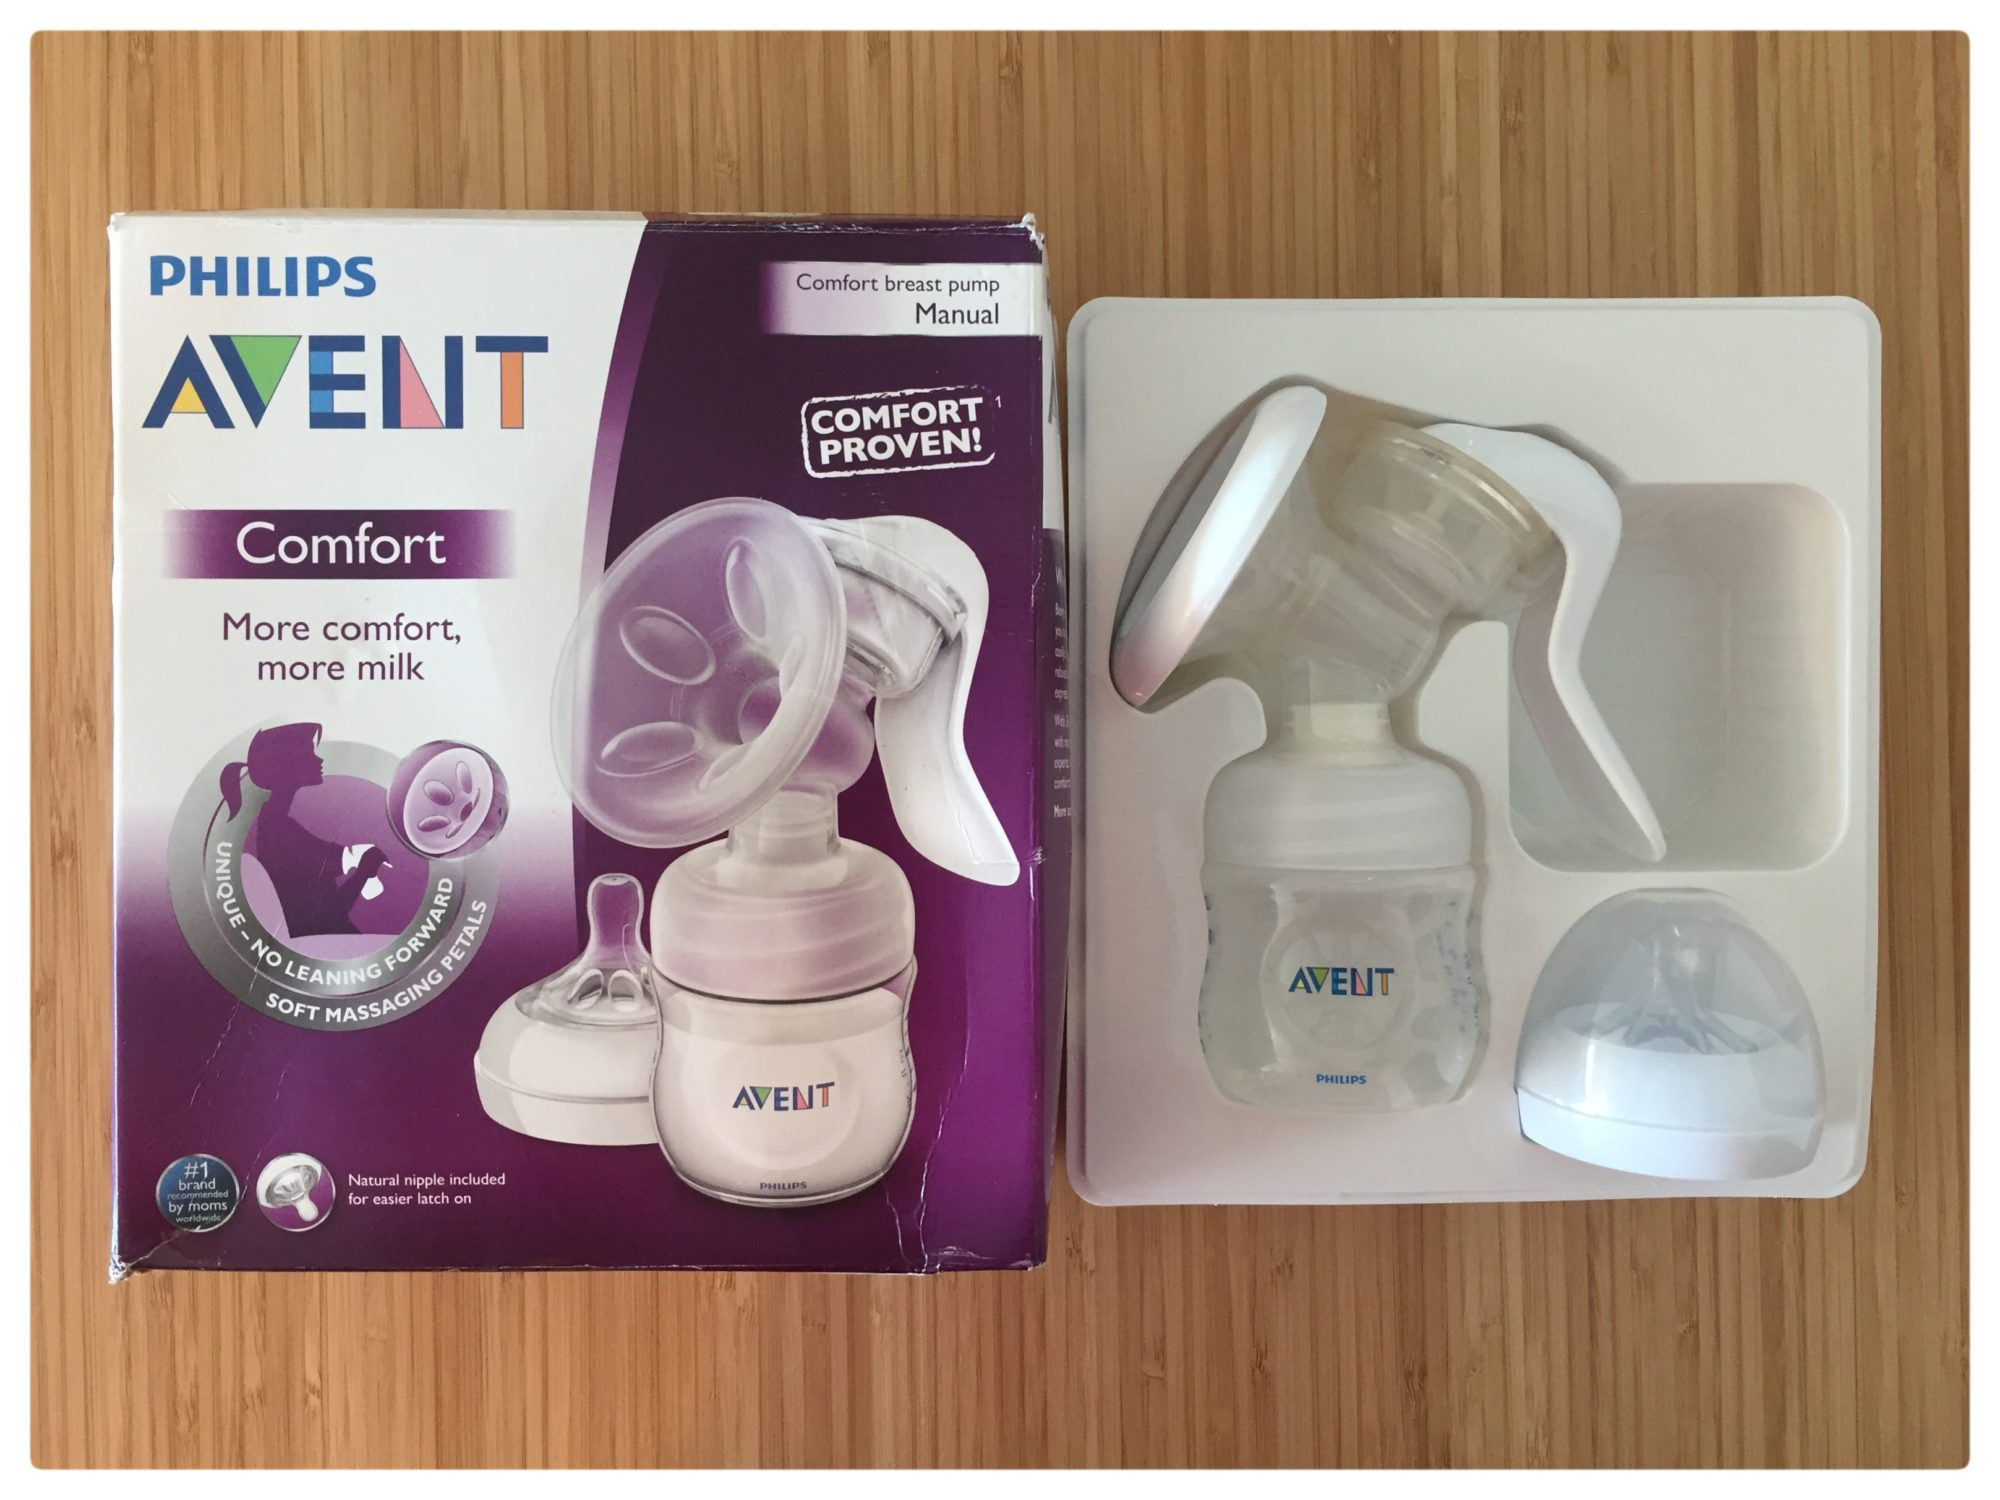 Philips Avent Comfort Manual Breast Pump Review Breast Pump Expert